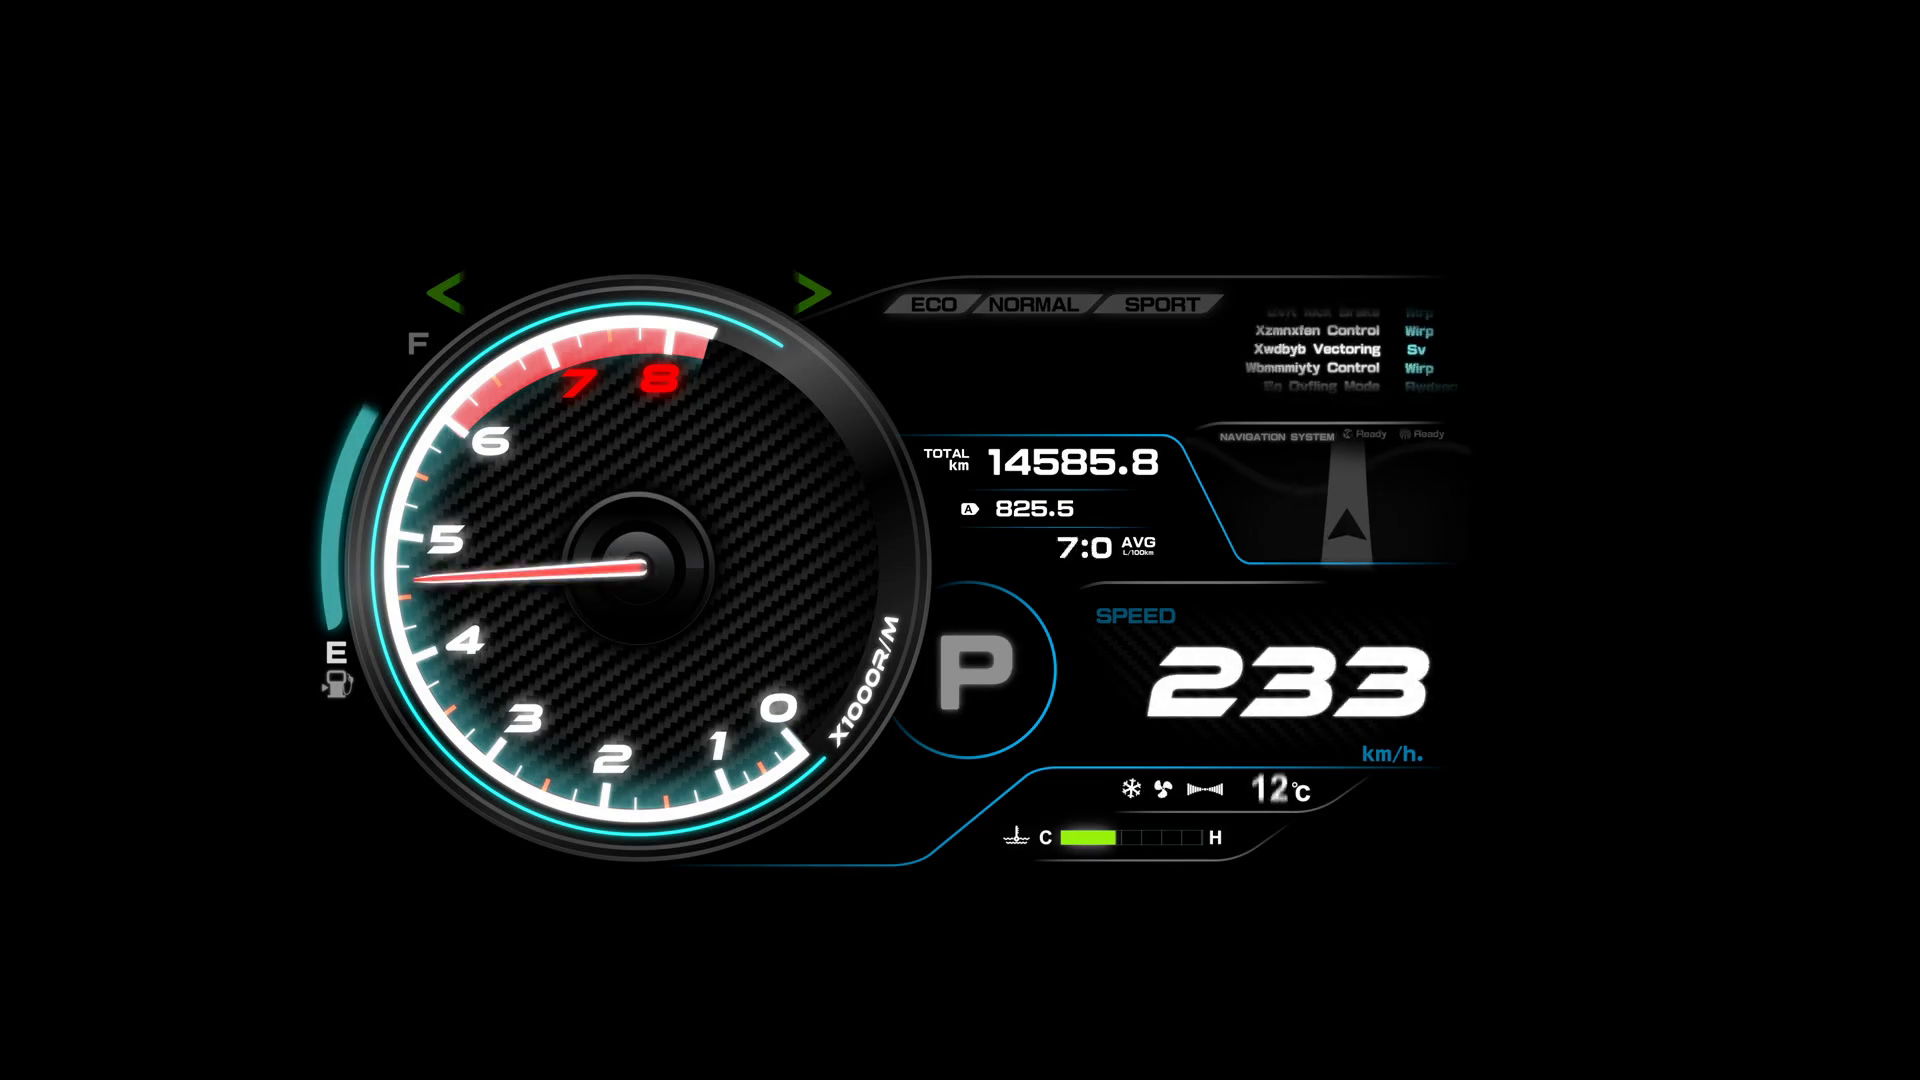 4 K Animation Of Futuristic Car Dashboard With Speed And Rpm Meter Movement  Concepts For Transport Vehicle Design Motion Background.